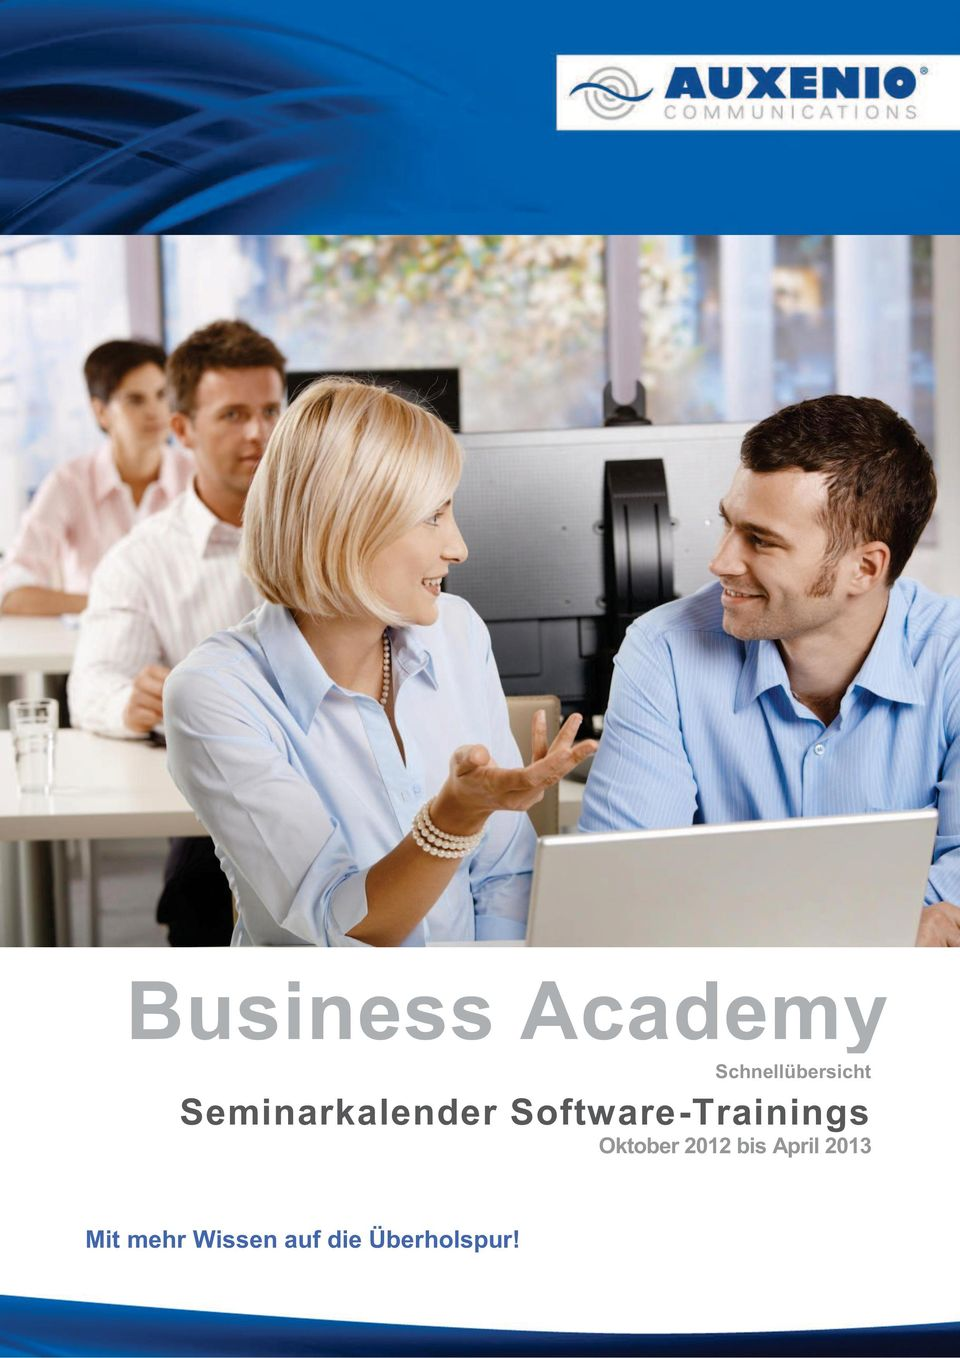 Software-Trainings Oktober 2012